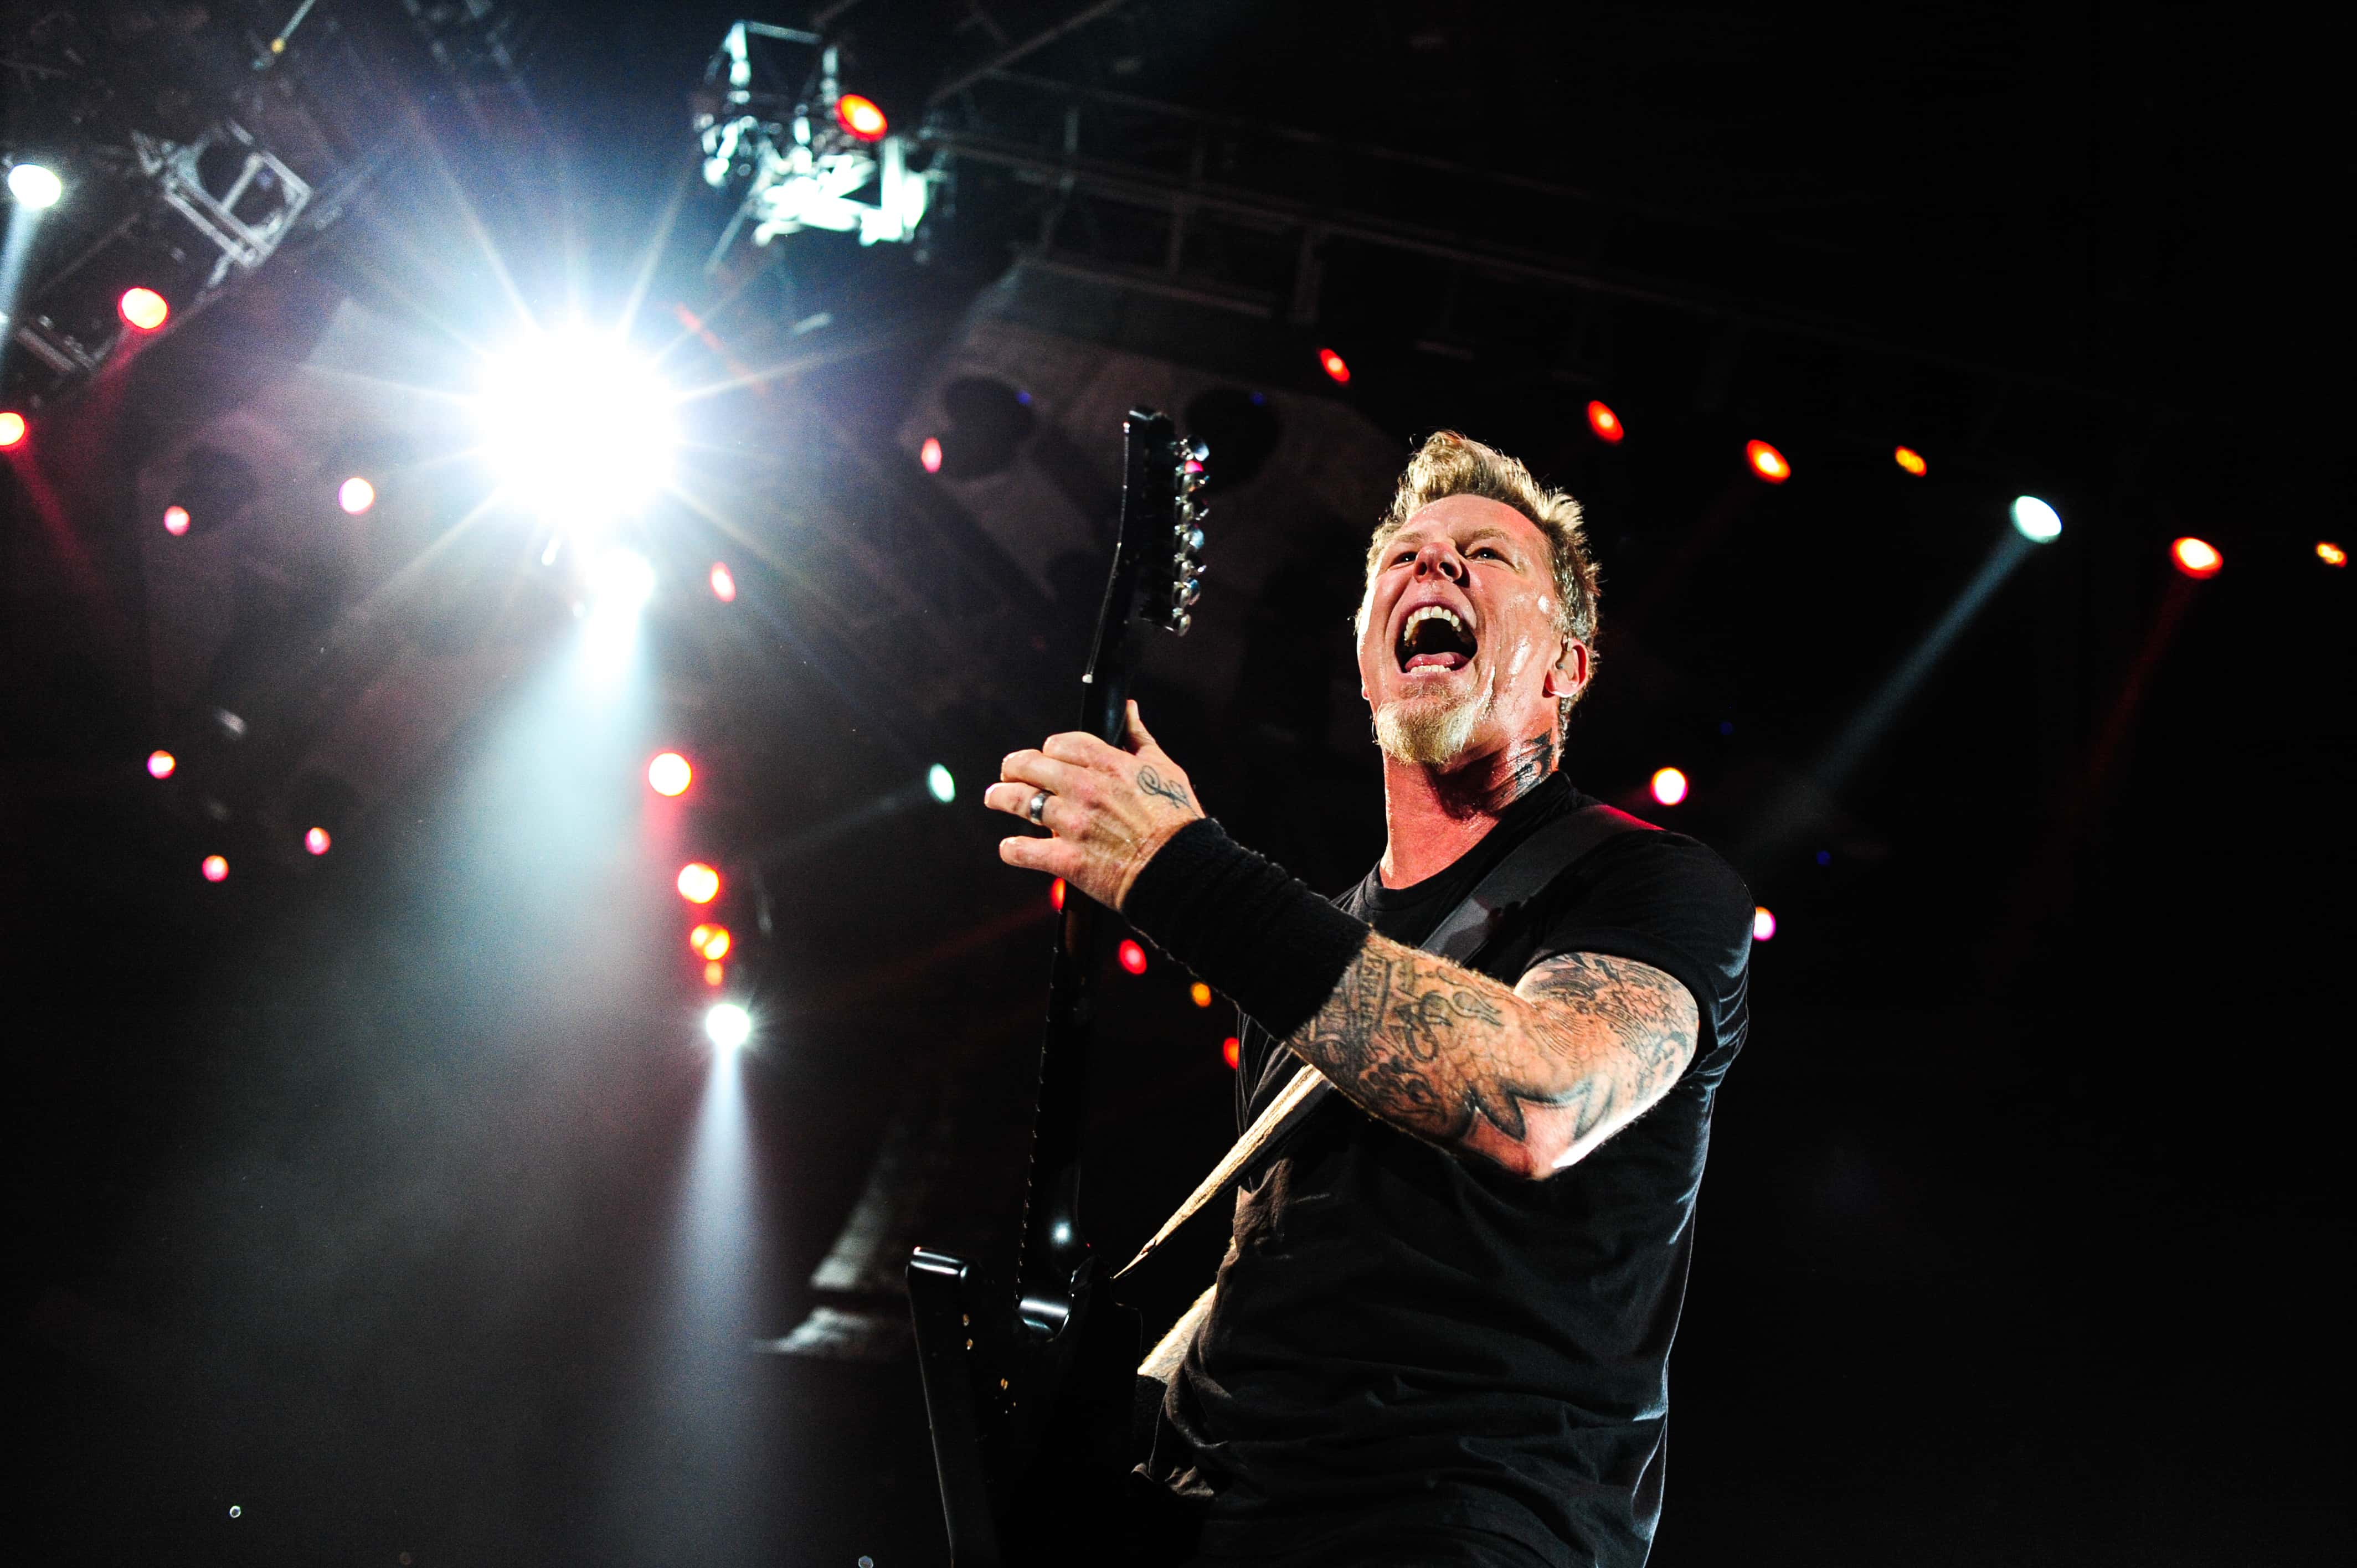 Thirsty?? Metallica at the top of their game in 2019 | 100 7